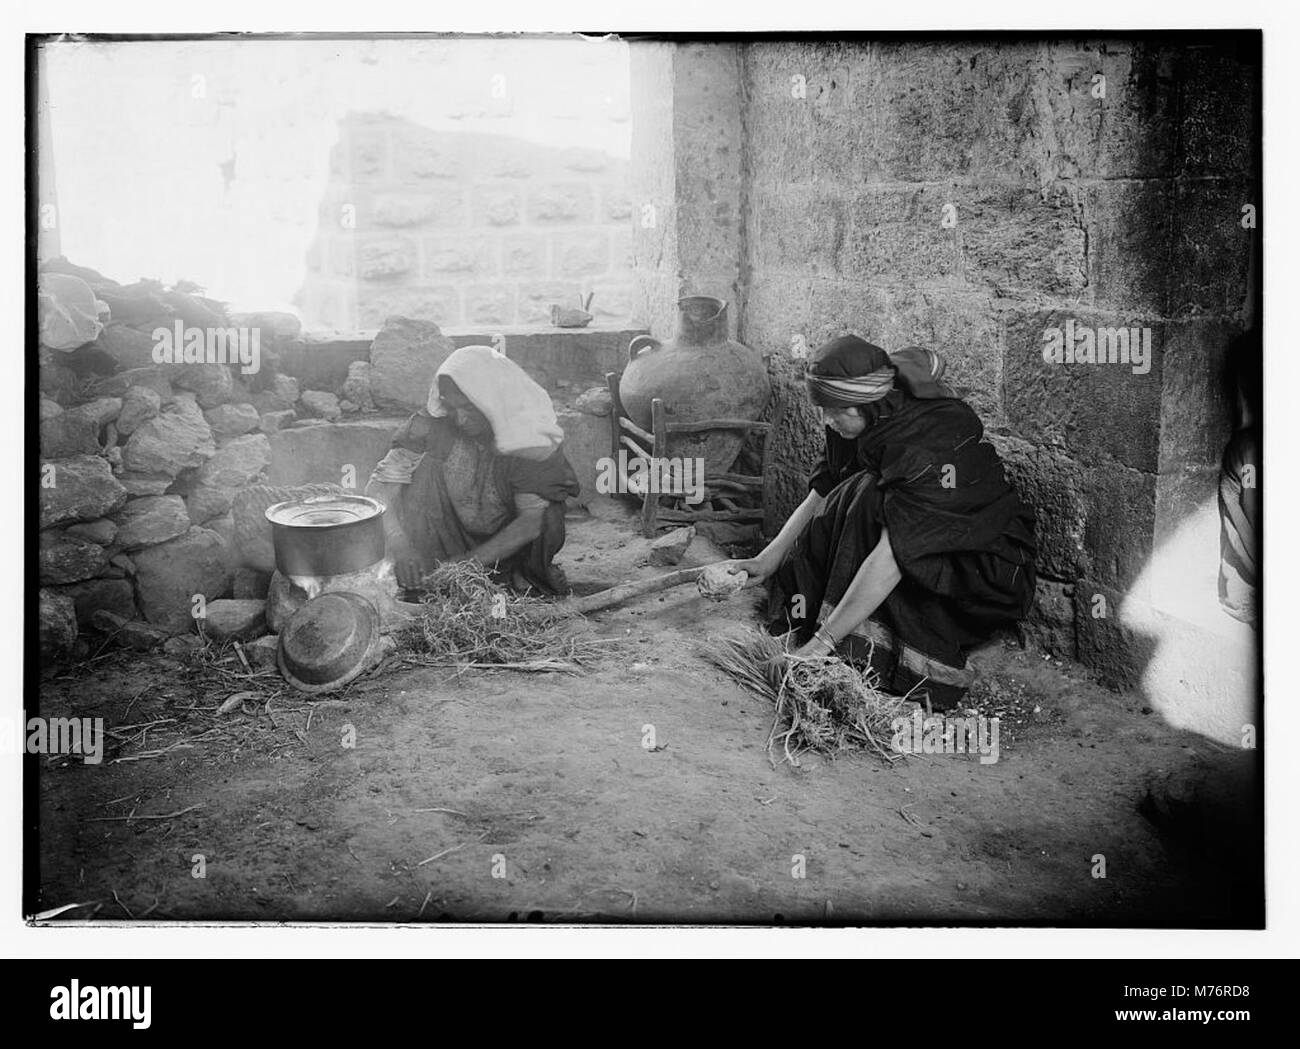 Winnowing Black And White Stock Photos Amp Images Alamy